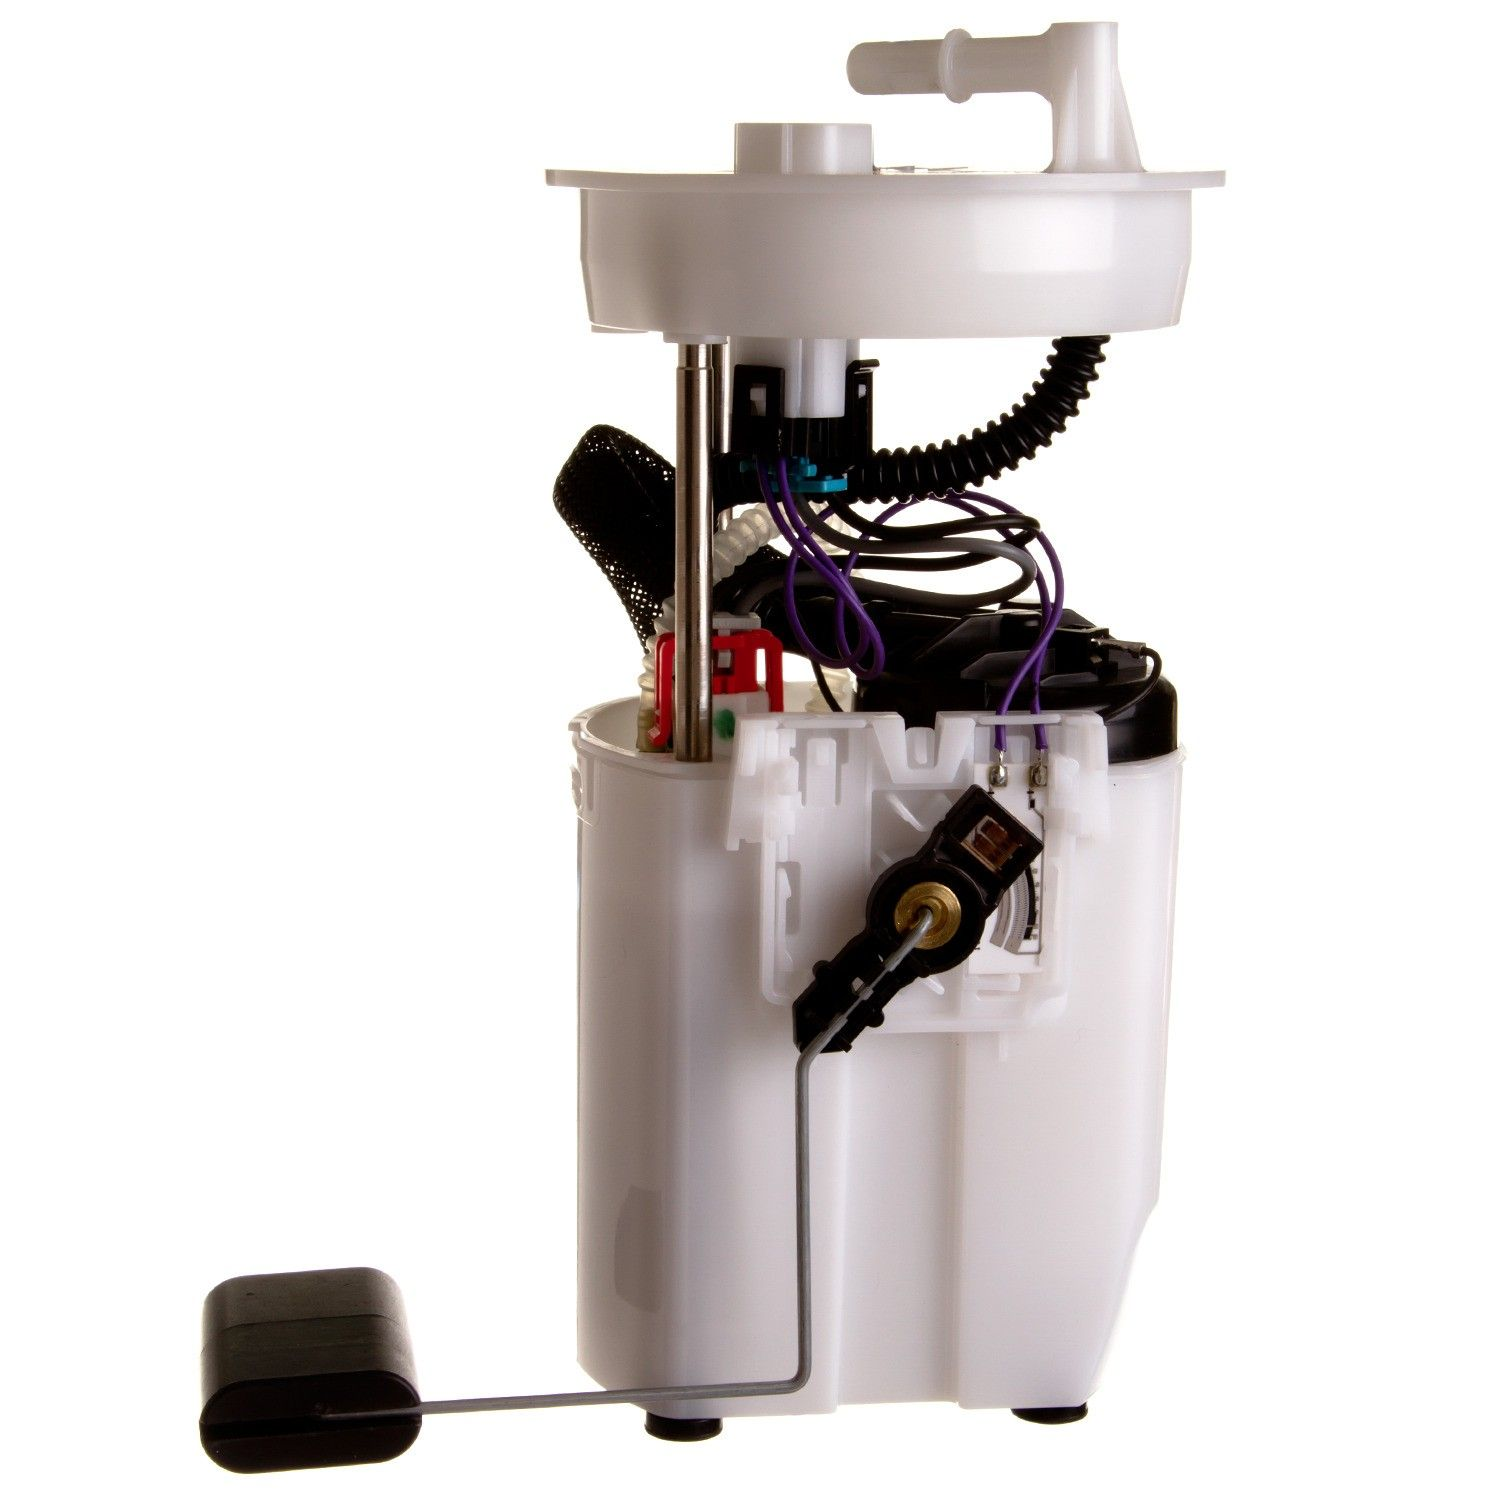 2010 Honda Accord Fuel Pump Module Assembly 6 Cyl 3.5L (Delphi FG0962)  Strainer Is Inside The Module Assembly Once New Fuel Module Has Been  Installed And ...